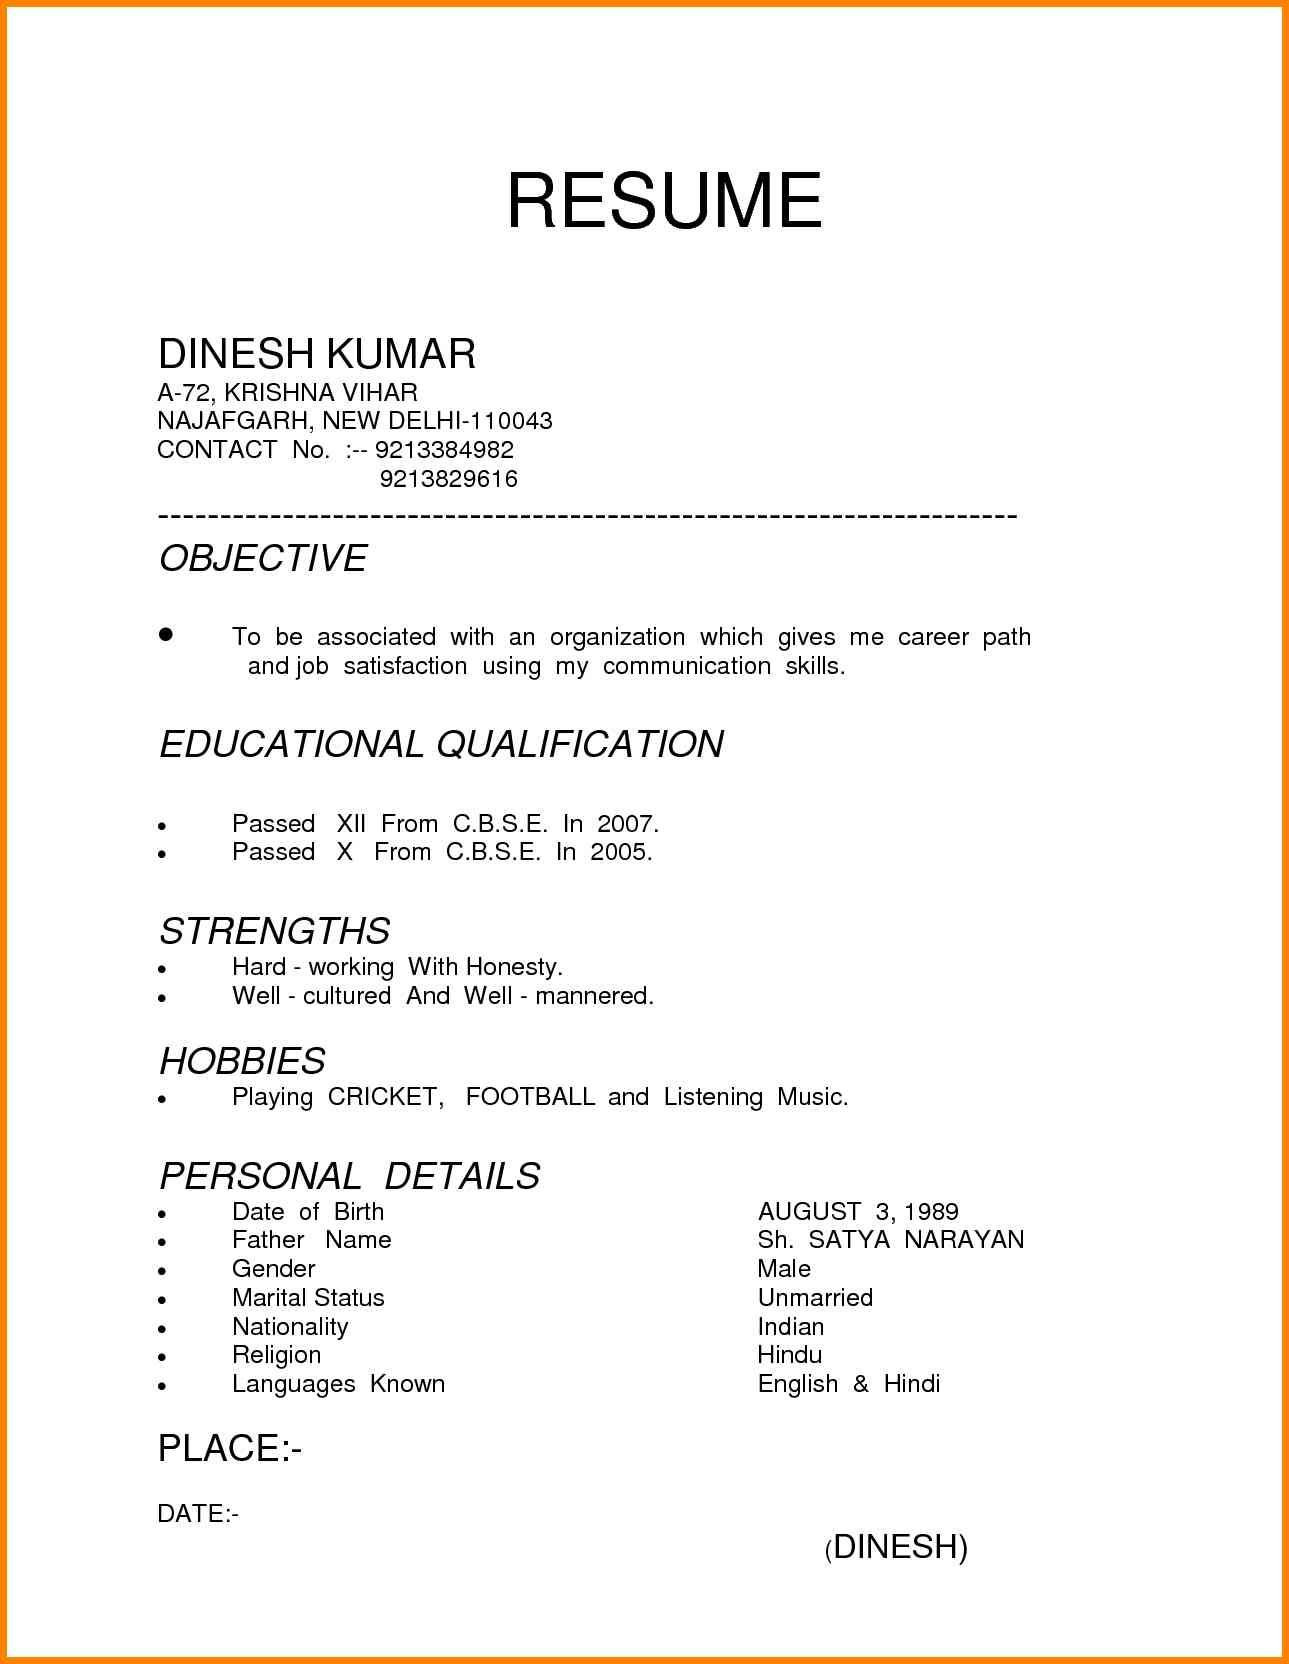 Resume Format Parlo Buenacocina in 2020 (With images